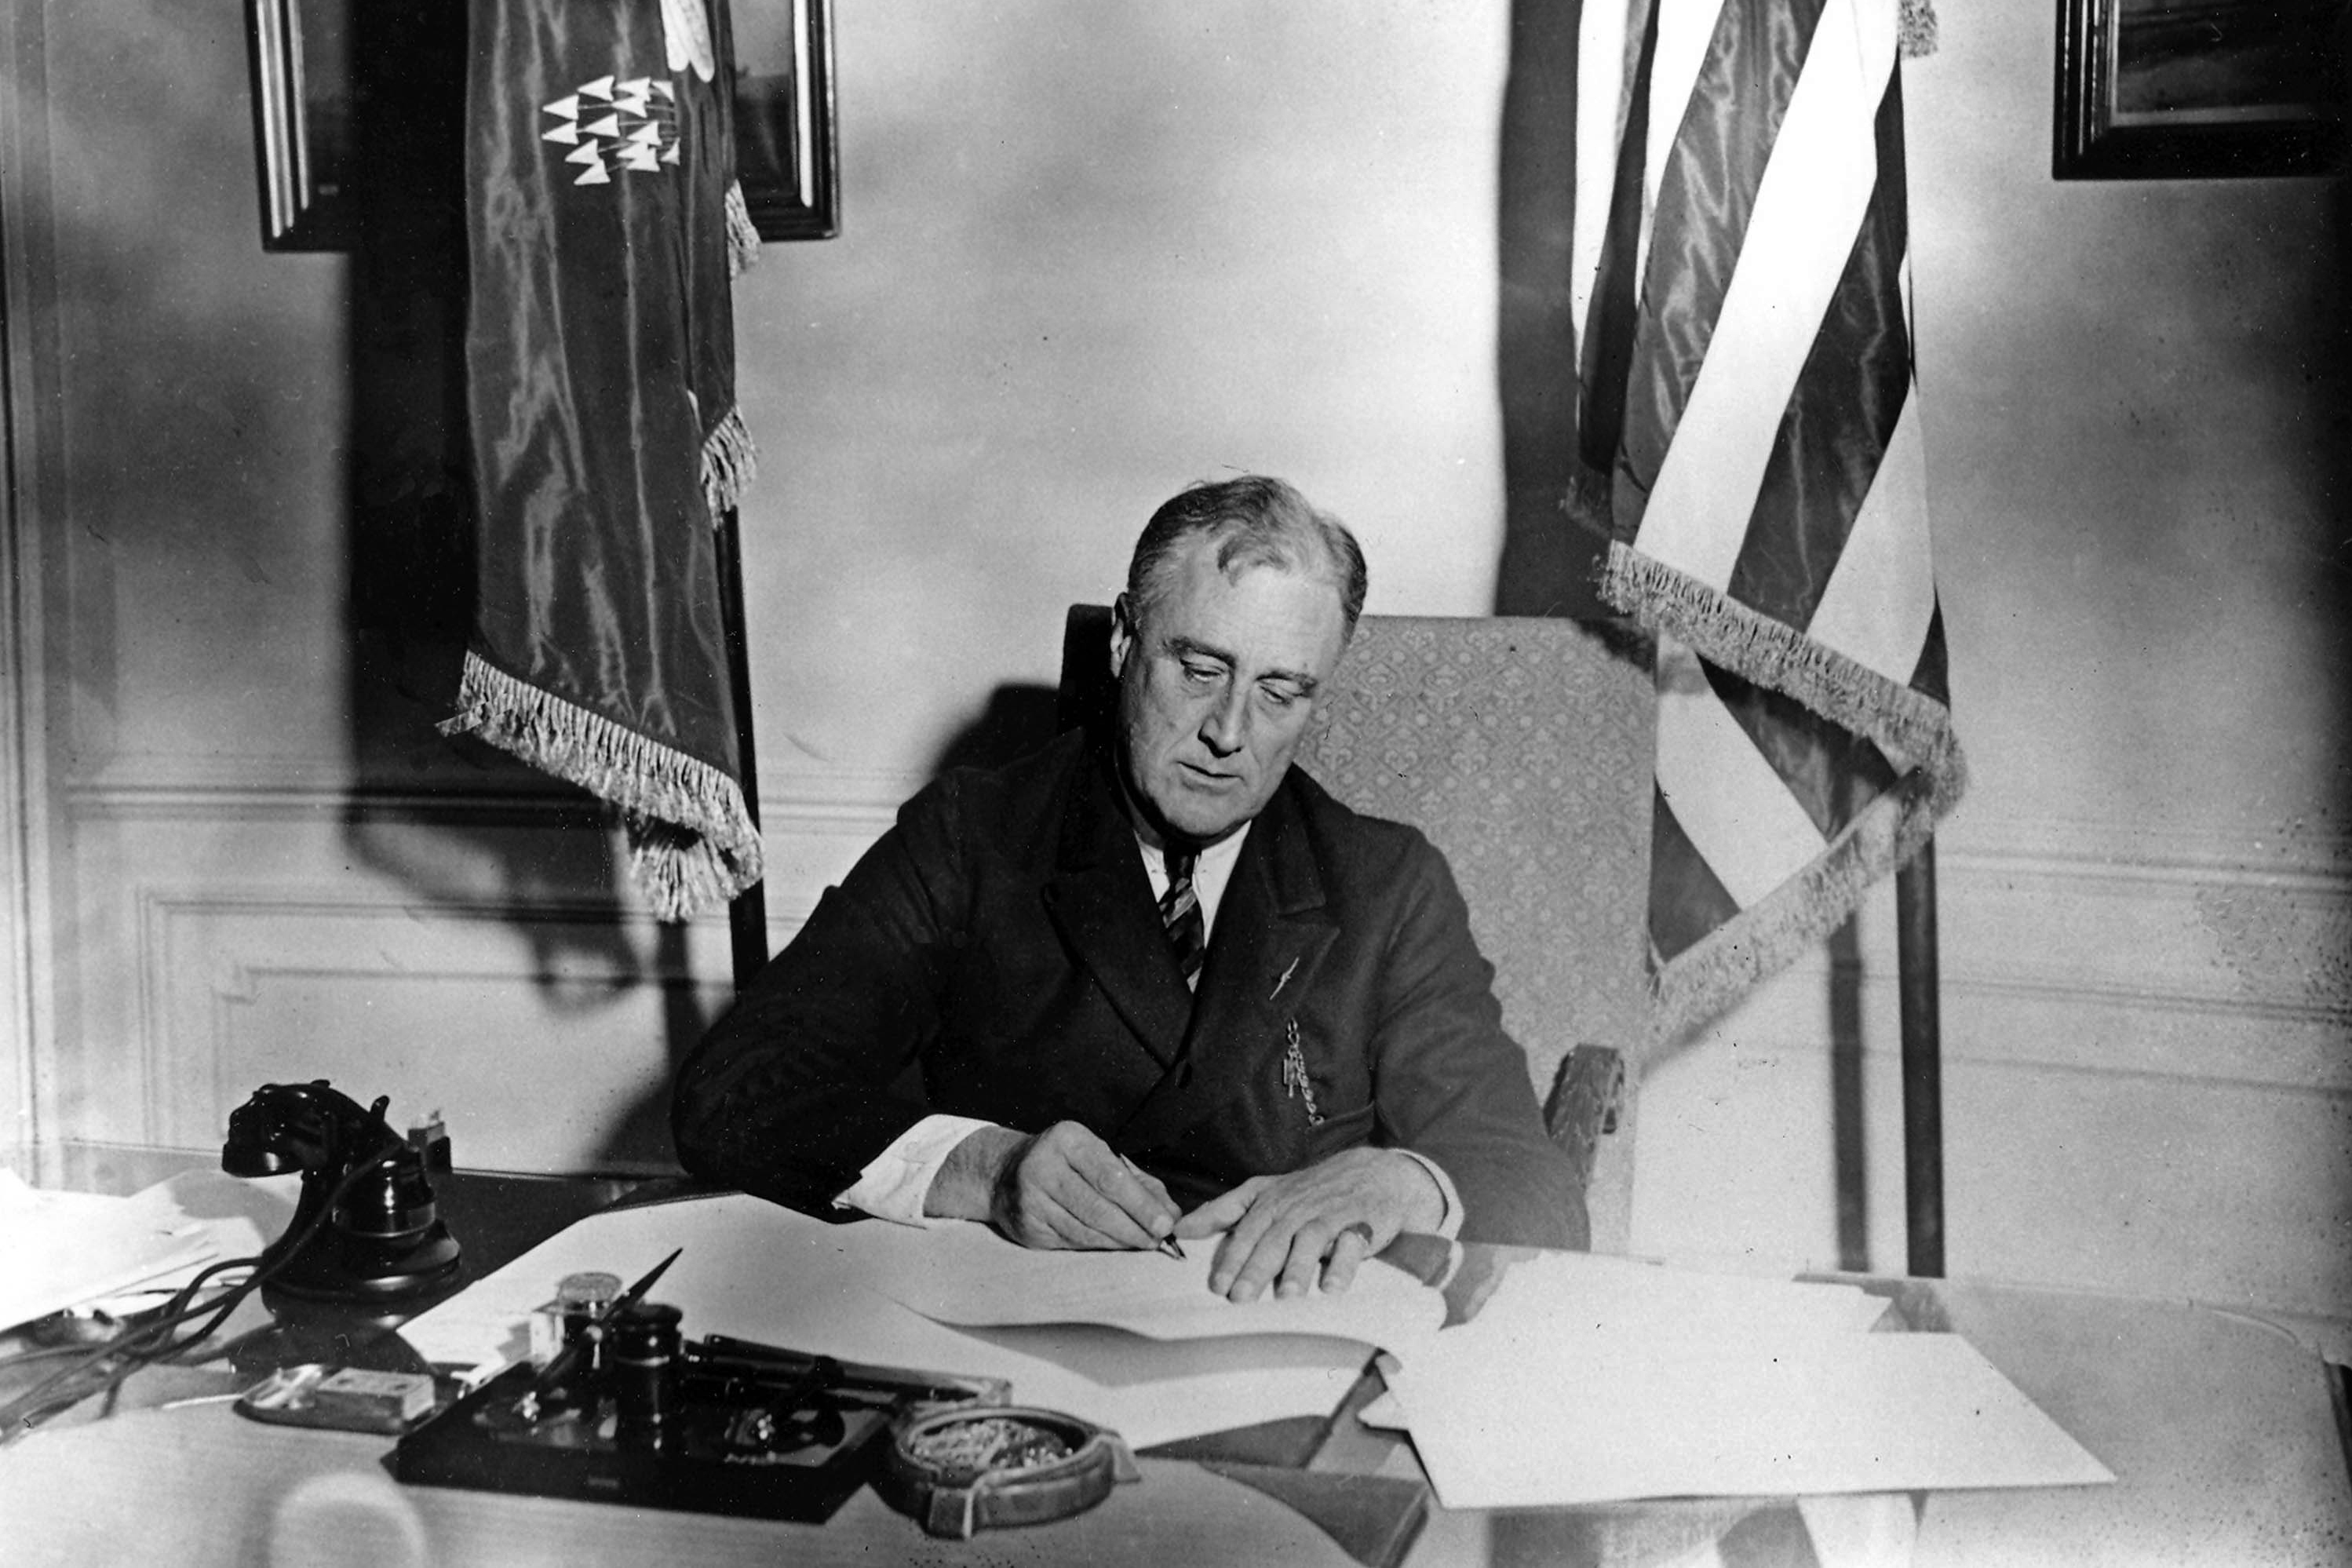 Roosevelt signing the Emergency Banking Act, ordering the confiscation of gold